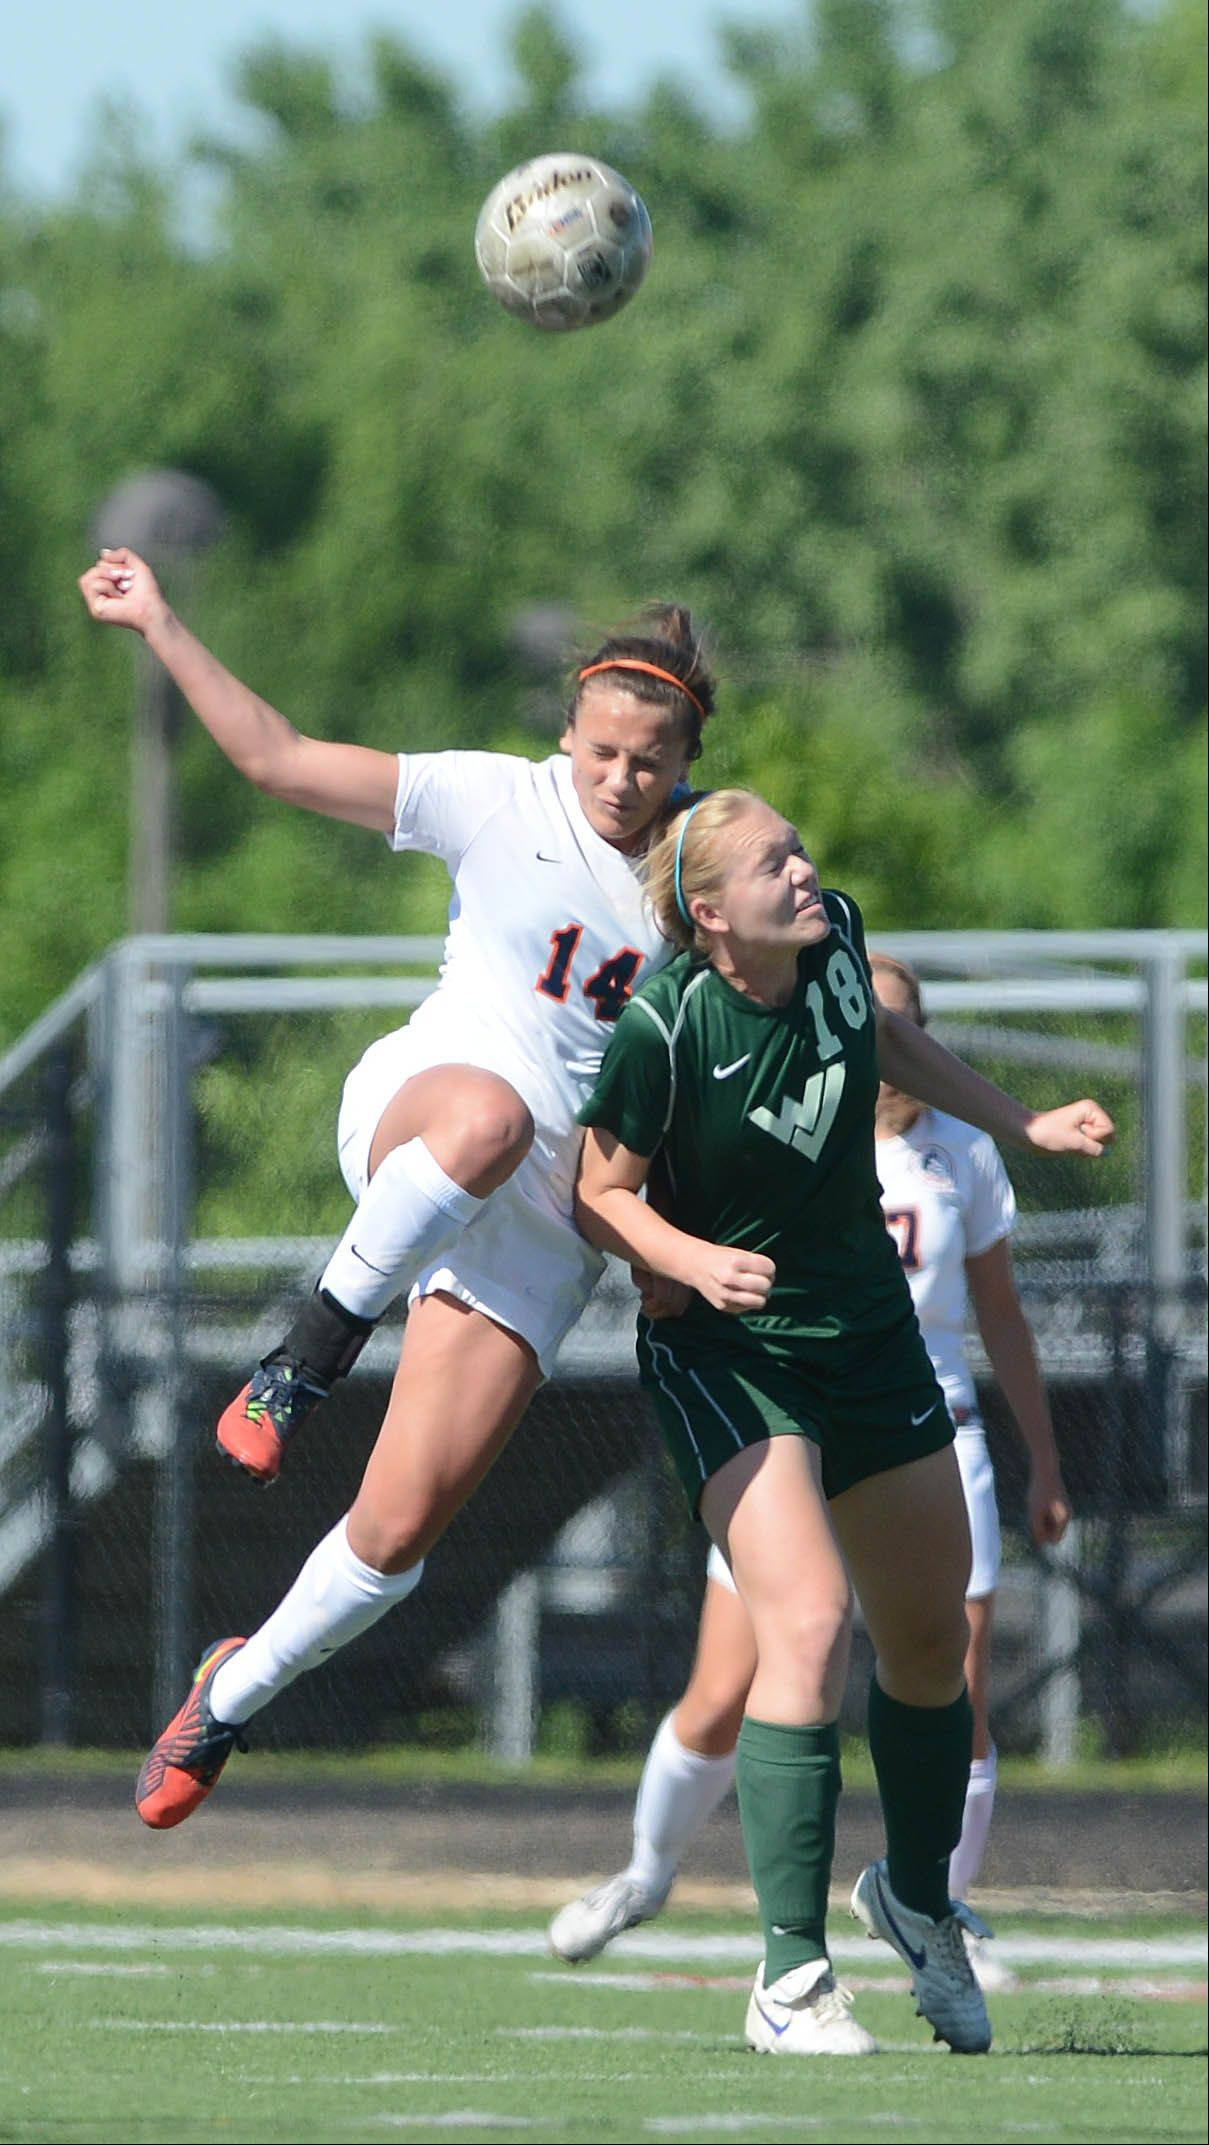 Paul Michna/pmichna@dailyherald.com ¬ Christa Szalach of Napoerville North and Morgan Kemerling of Waubonsie Valley go up for a ball during the Class 3A Bolingbrook girls soccer sectional final Friday.